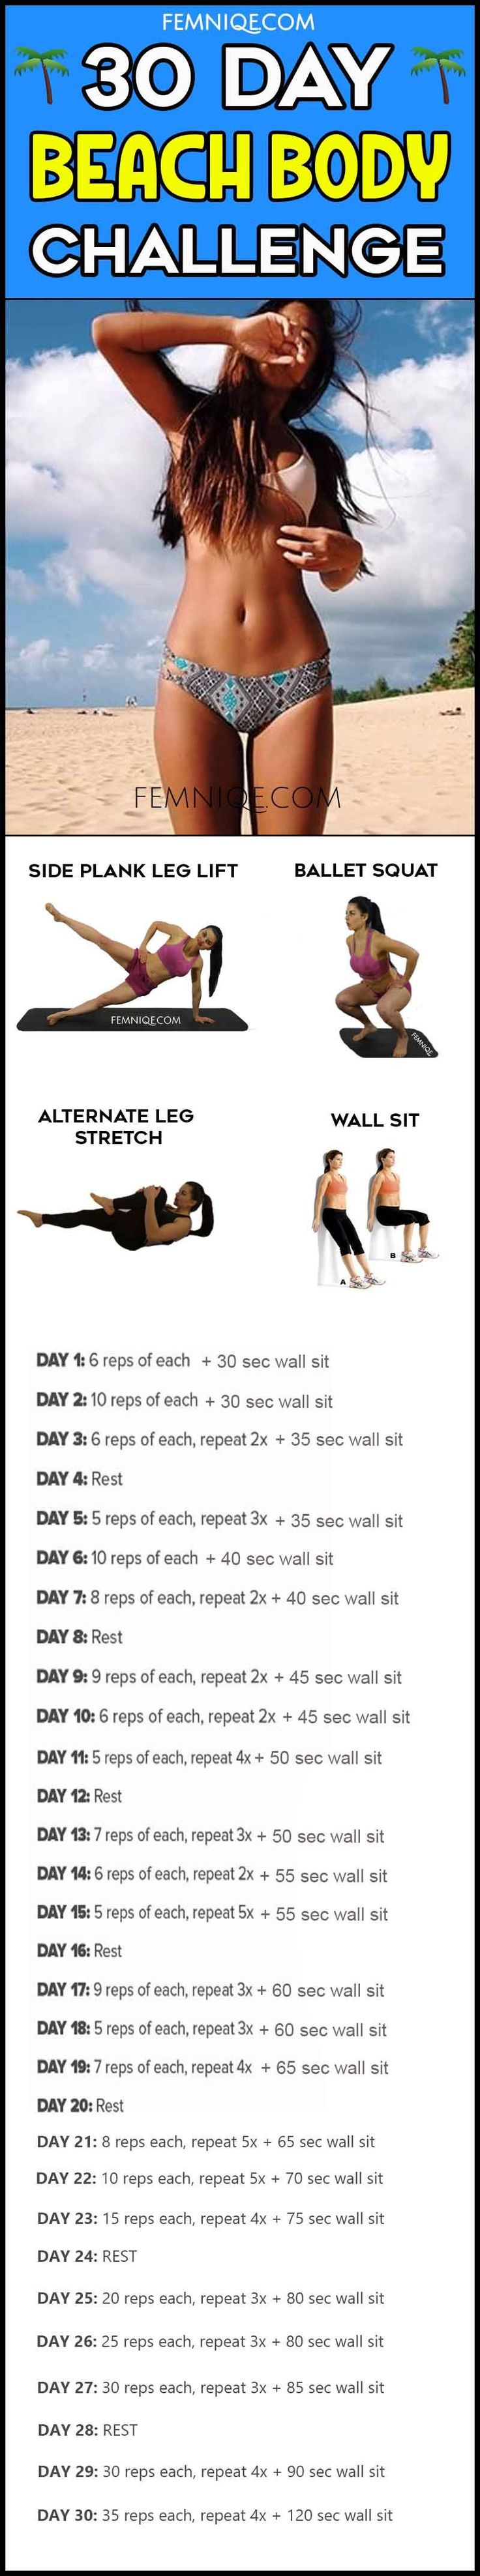 30 Day Beach Body Challenge - Do you want that sexy summer body? then here is a 30 day summer body challenge that can sculpt your butt, thighs, abs and upper body.